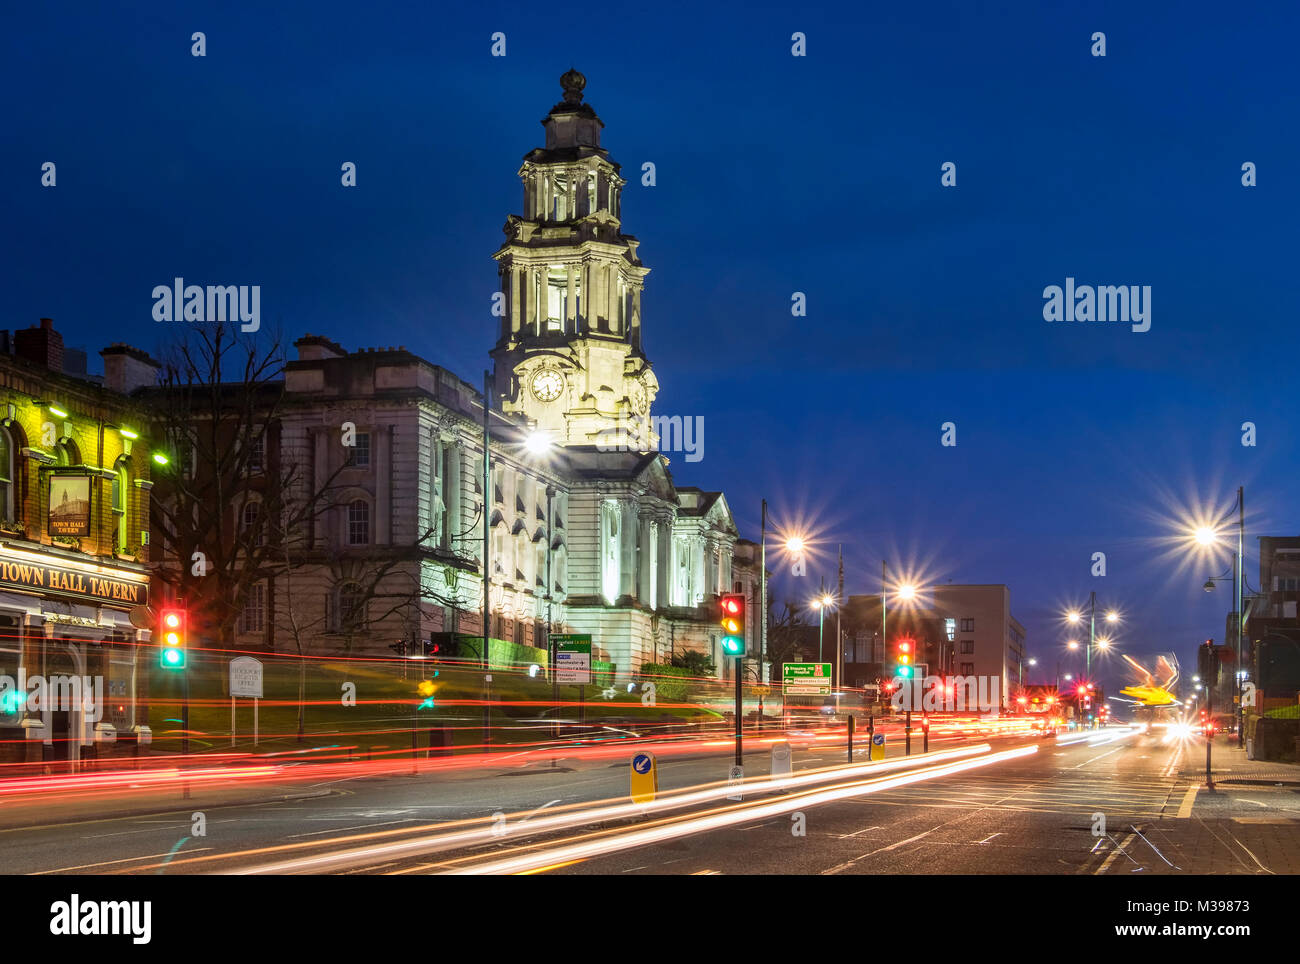 Stockport Town Hall at Night, Stockport, Greater Manchester, England, UK - Stock Image